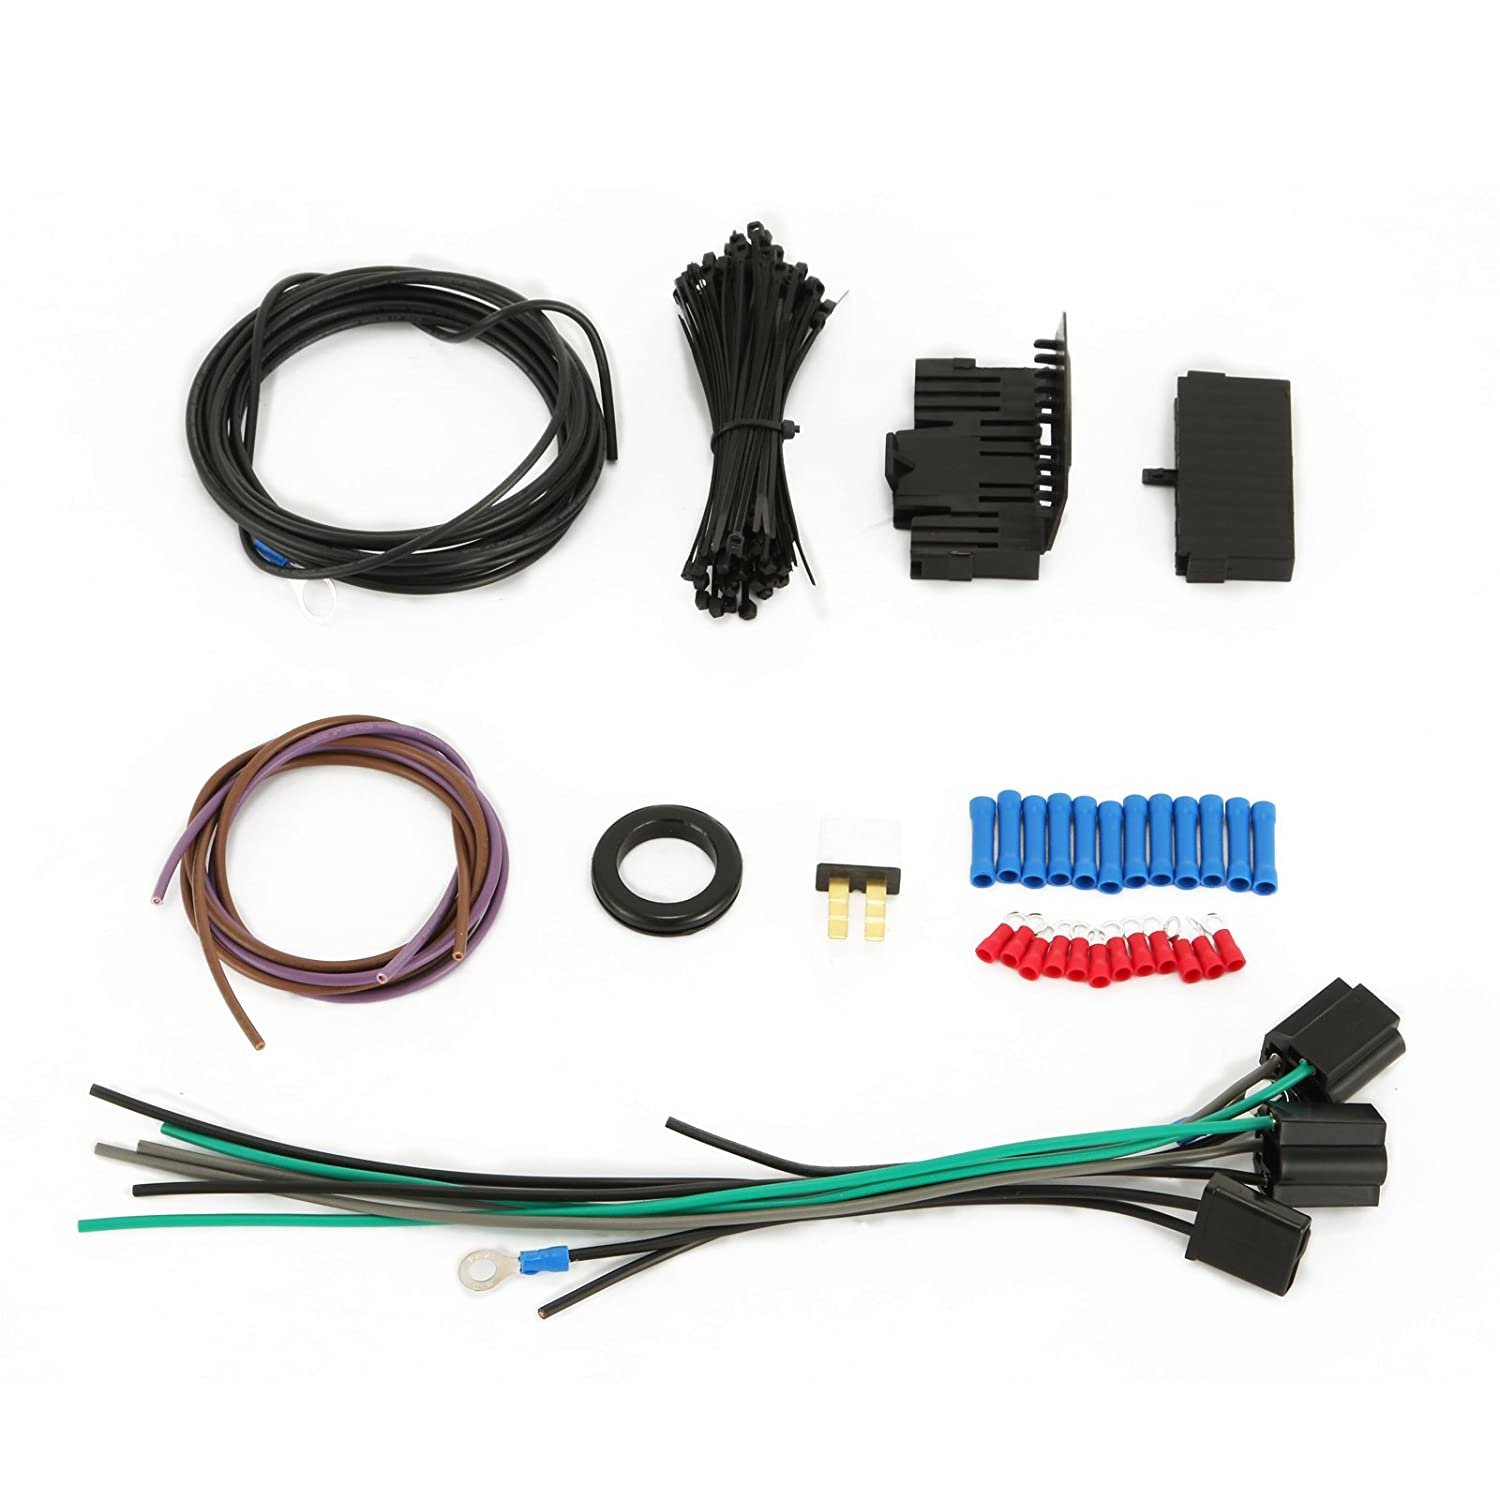 Mophorn 21 Circuit Wiring Harness Kit Long Wires Ez Wire Power Window Diagram Standard Color For Chevy Mopar Hotrods Ford Chrysler